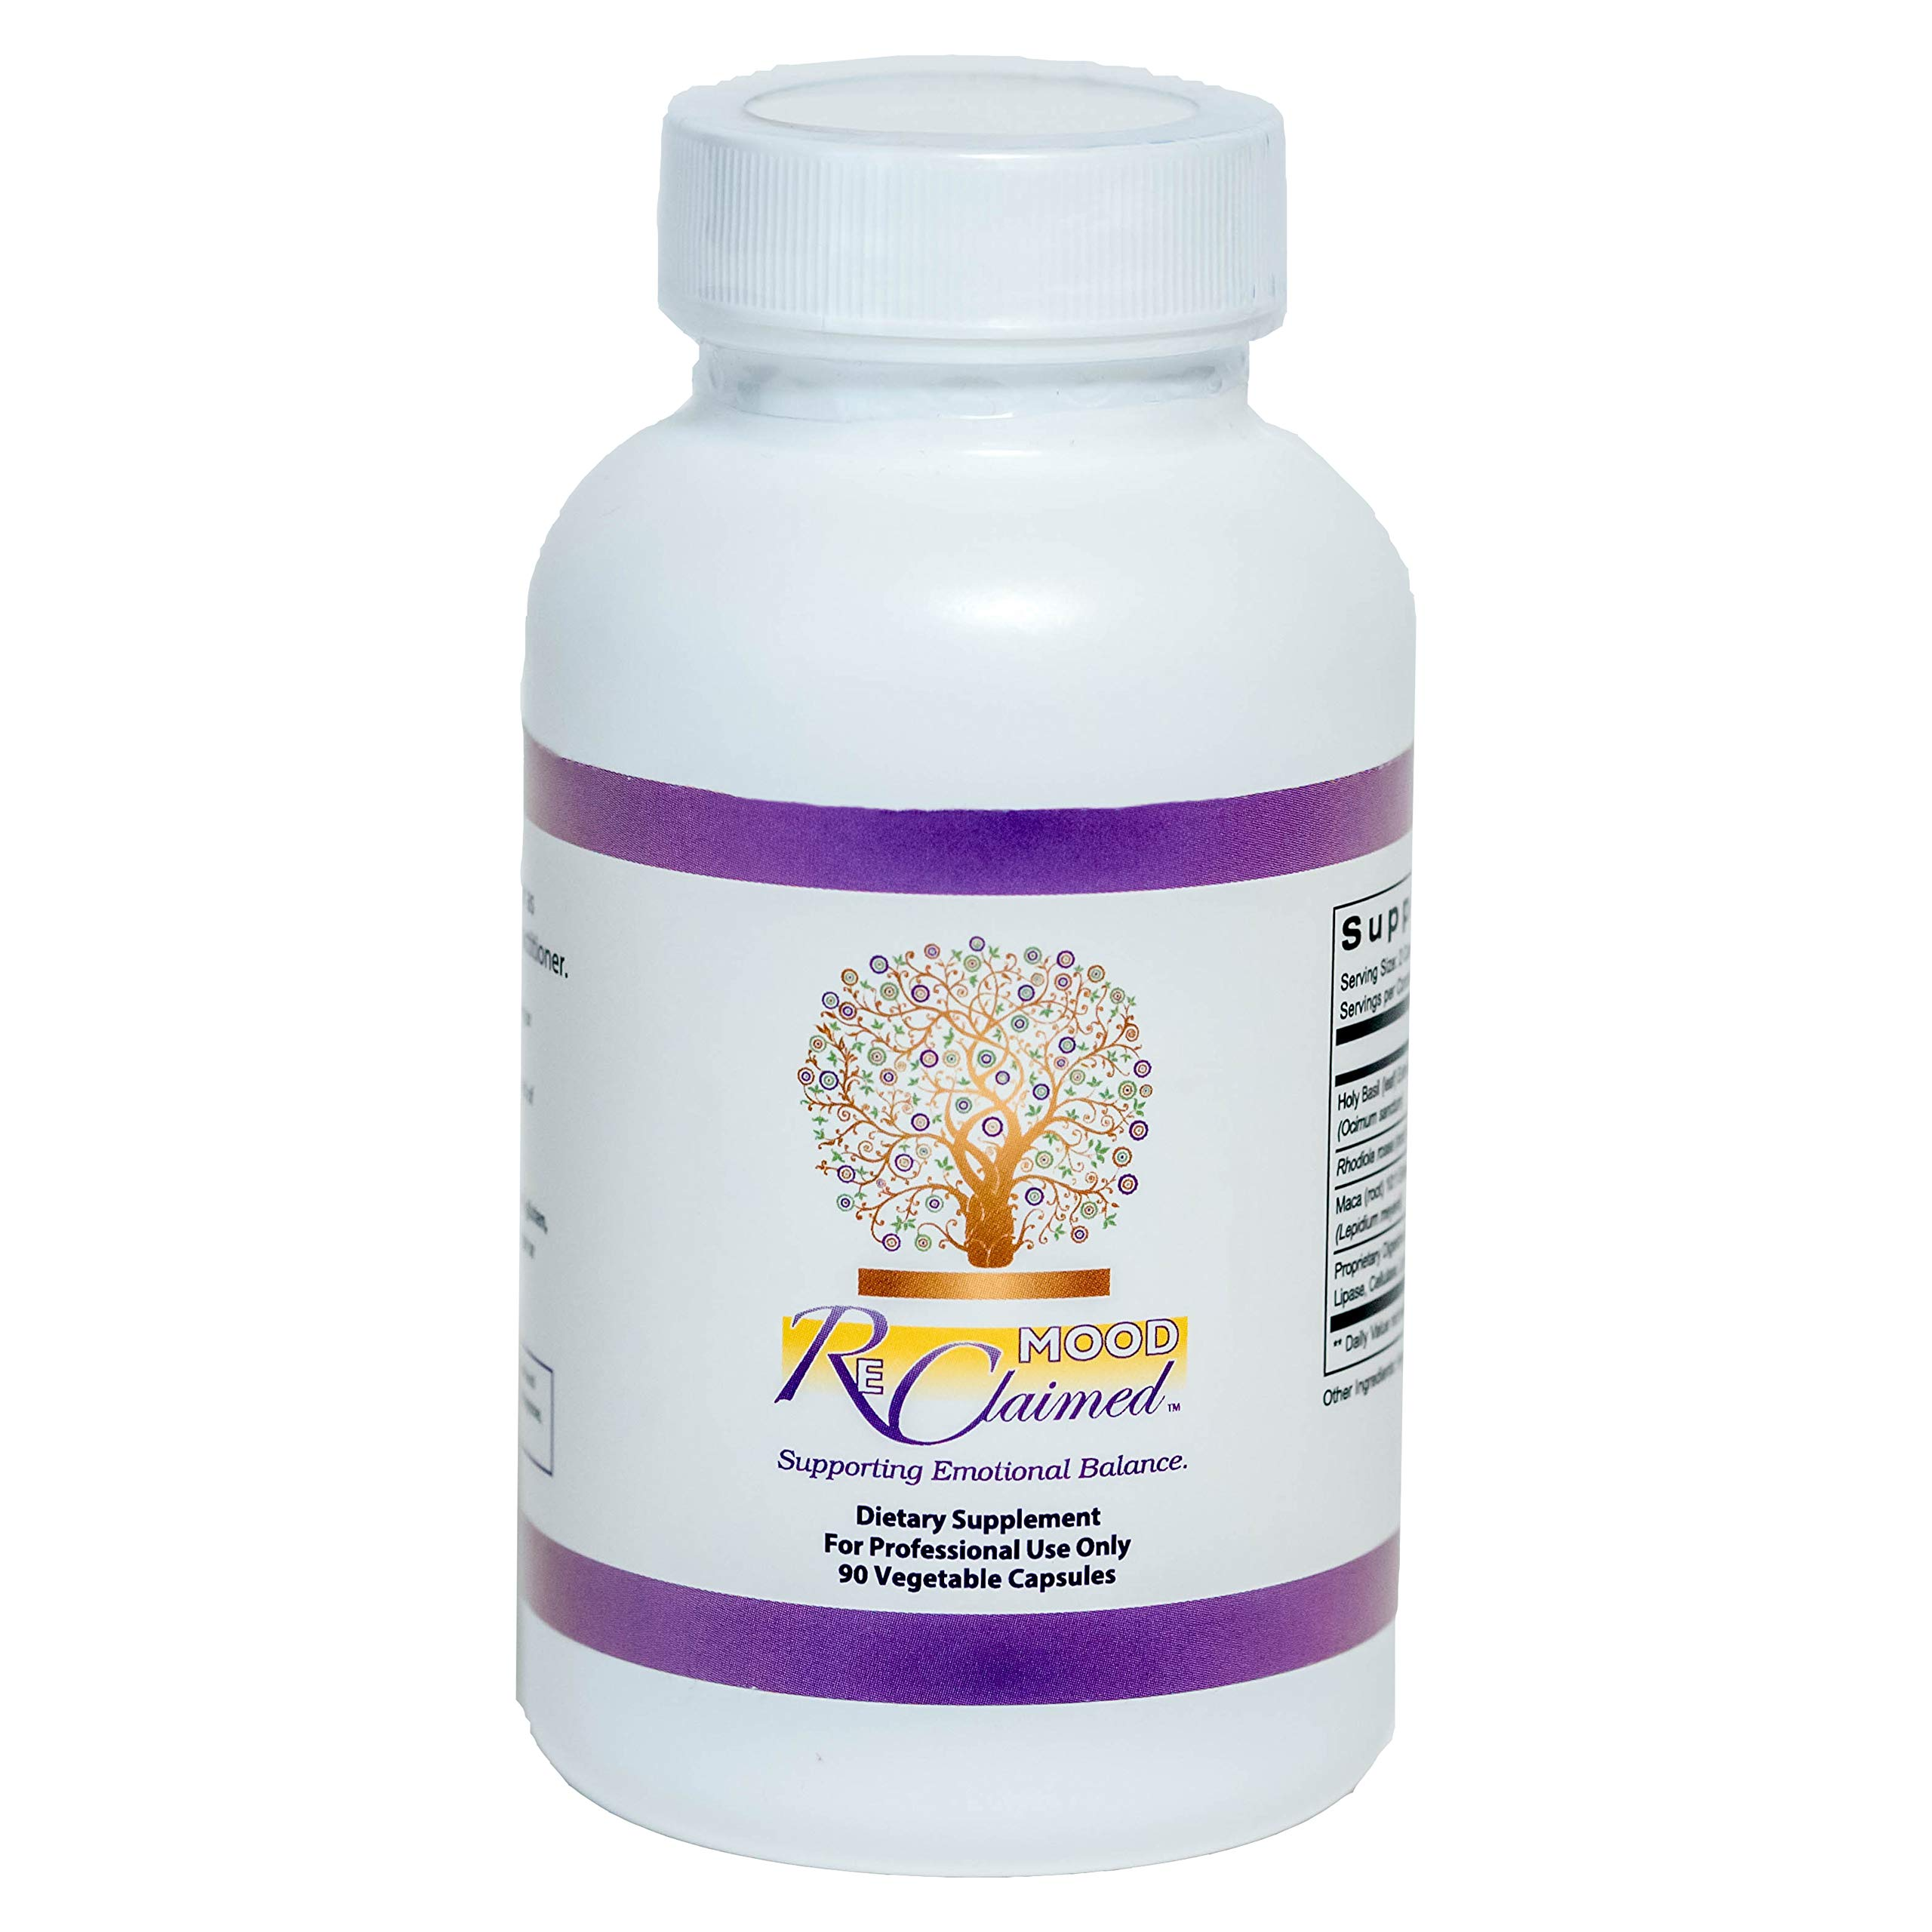 Mood Reclaimed Dietary Supplement, 90 Capsules, Supporting Emotional Balance by SHAPE ReClaimed